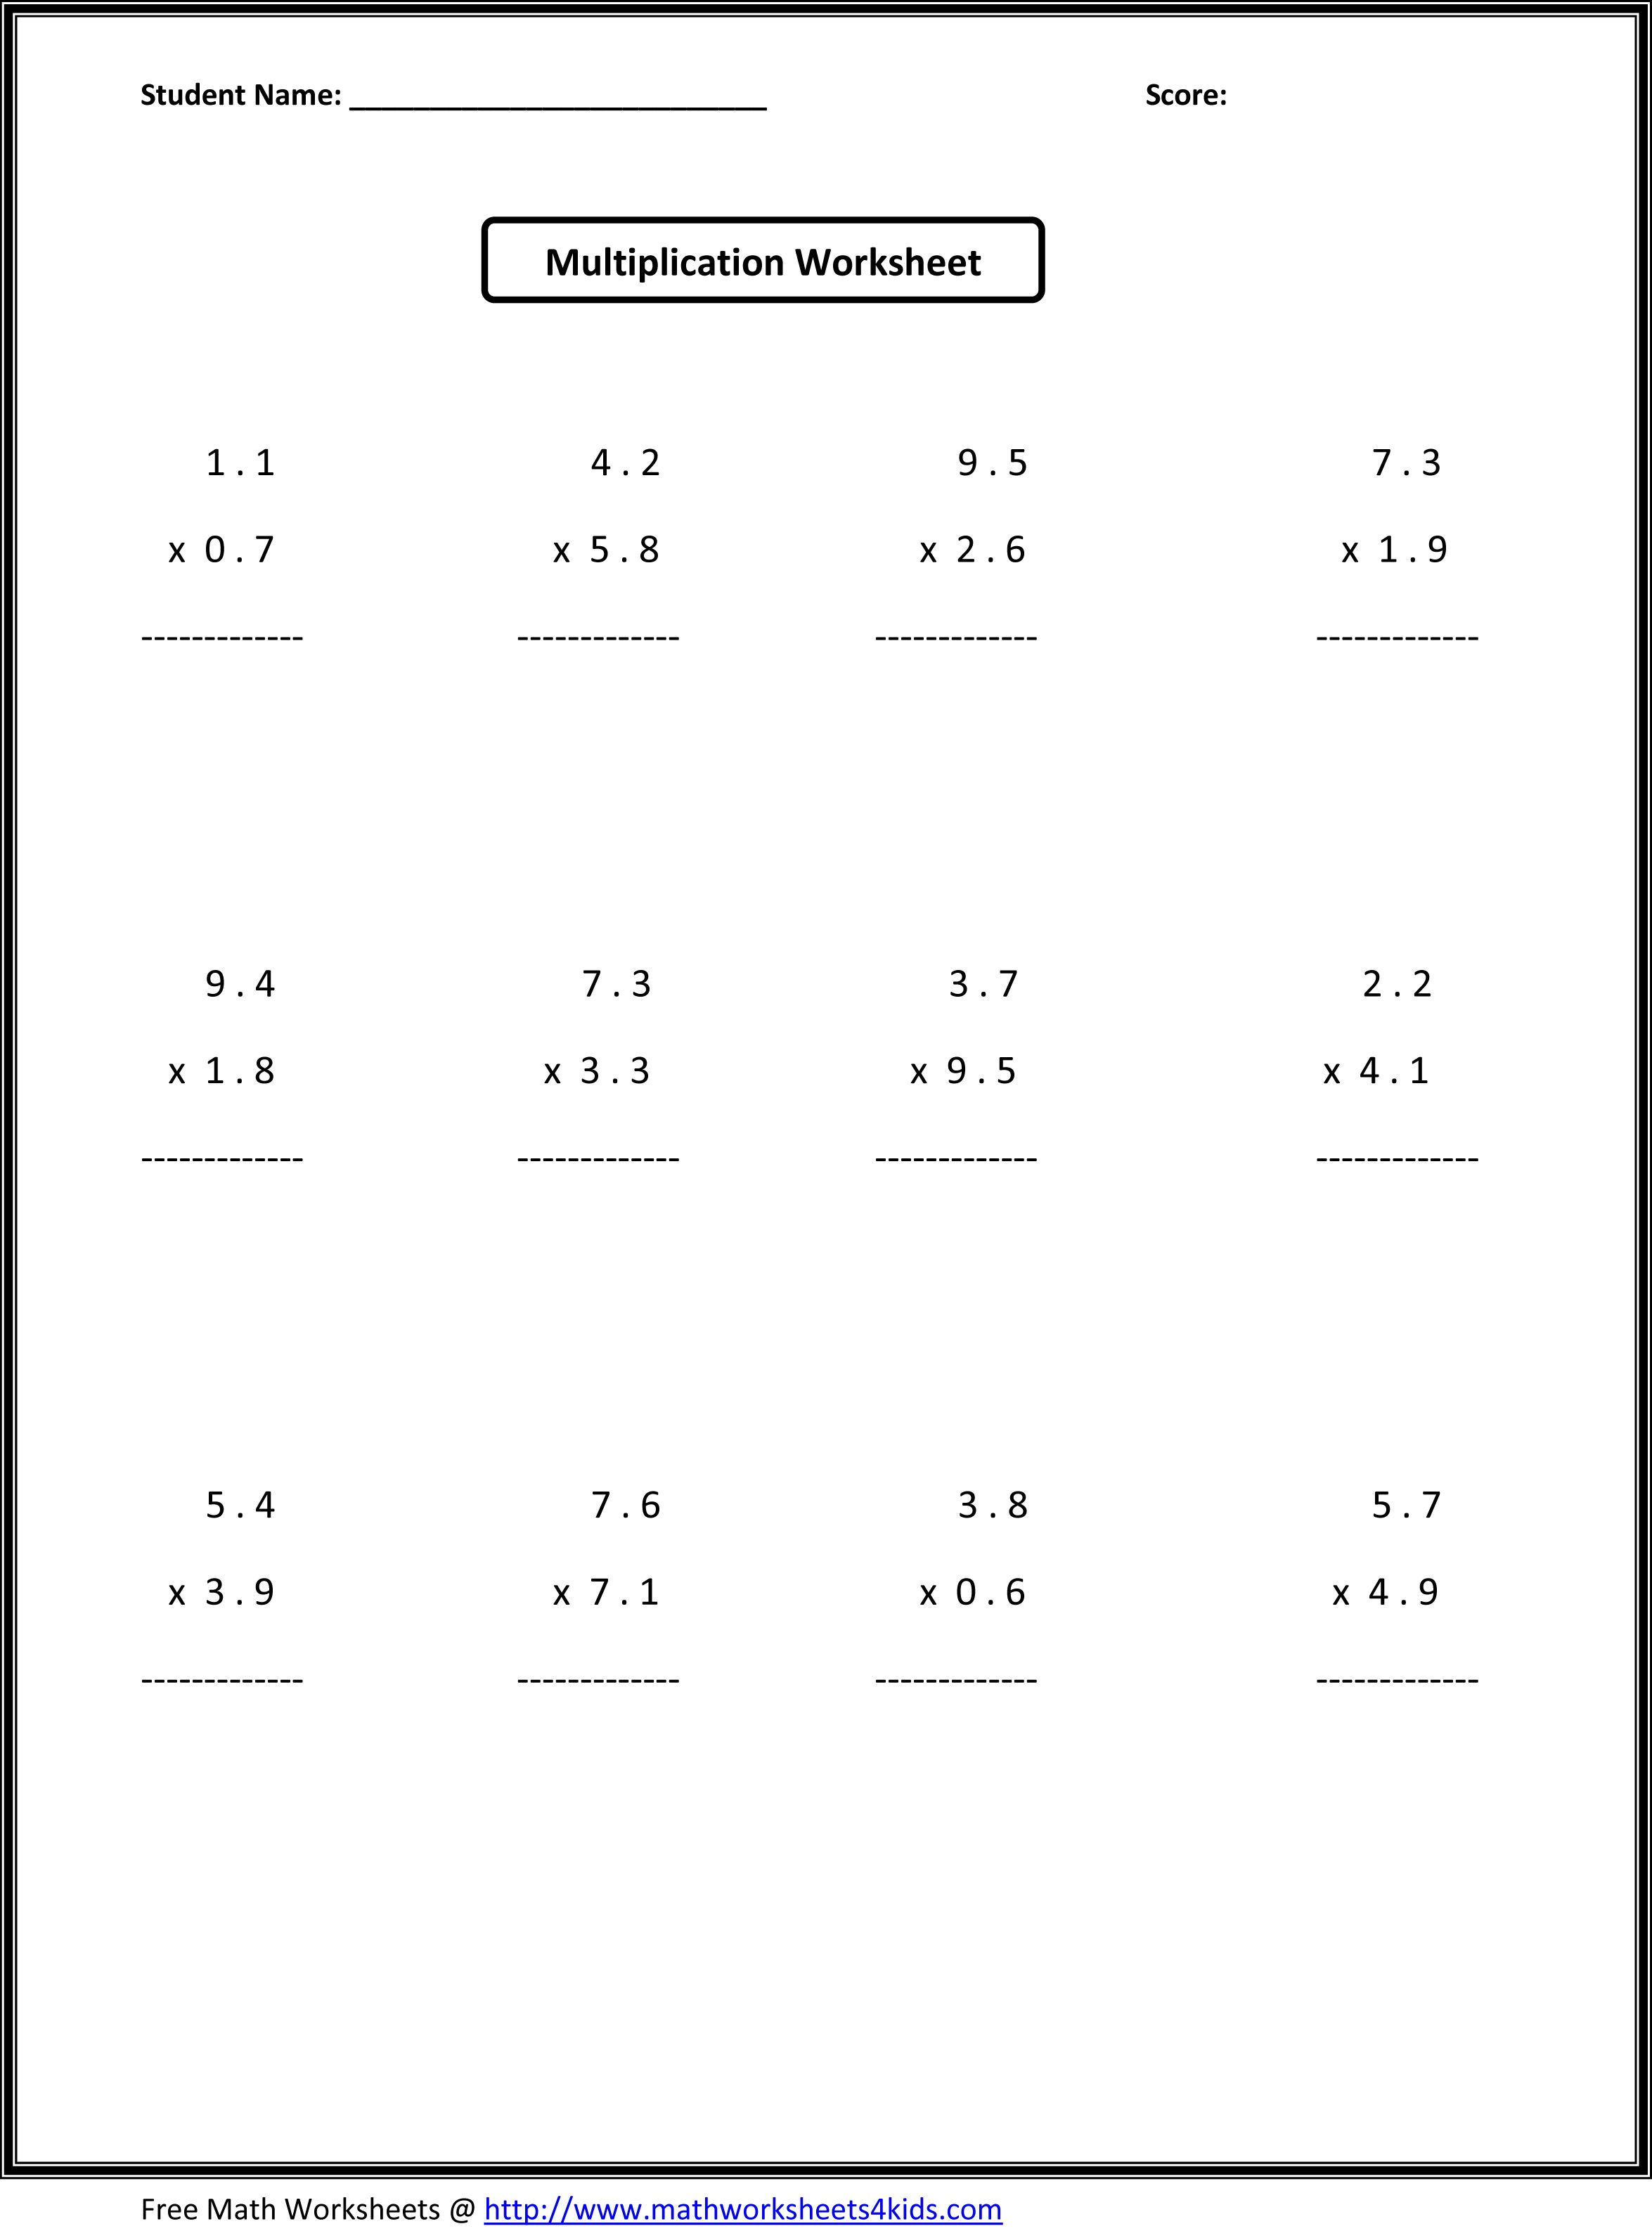 7th grade math worksheets | value worksheets absolute value ...